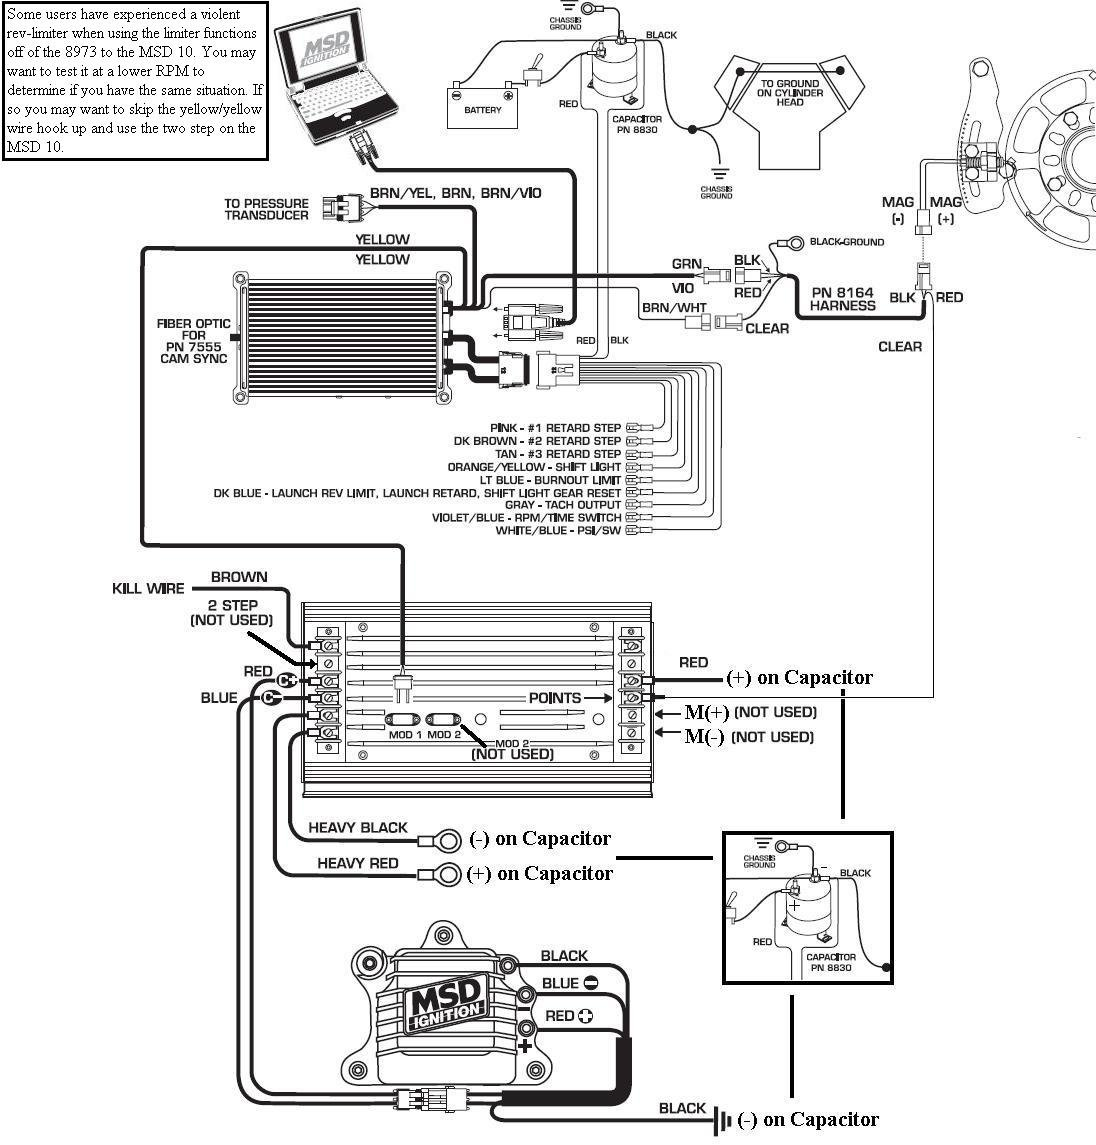 msd 6aln wiring diagram schematics and wiring diagrams distributor crank trigger timing control mustang ii work msd installation